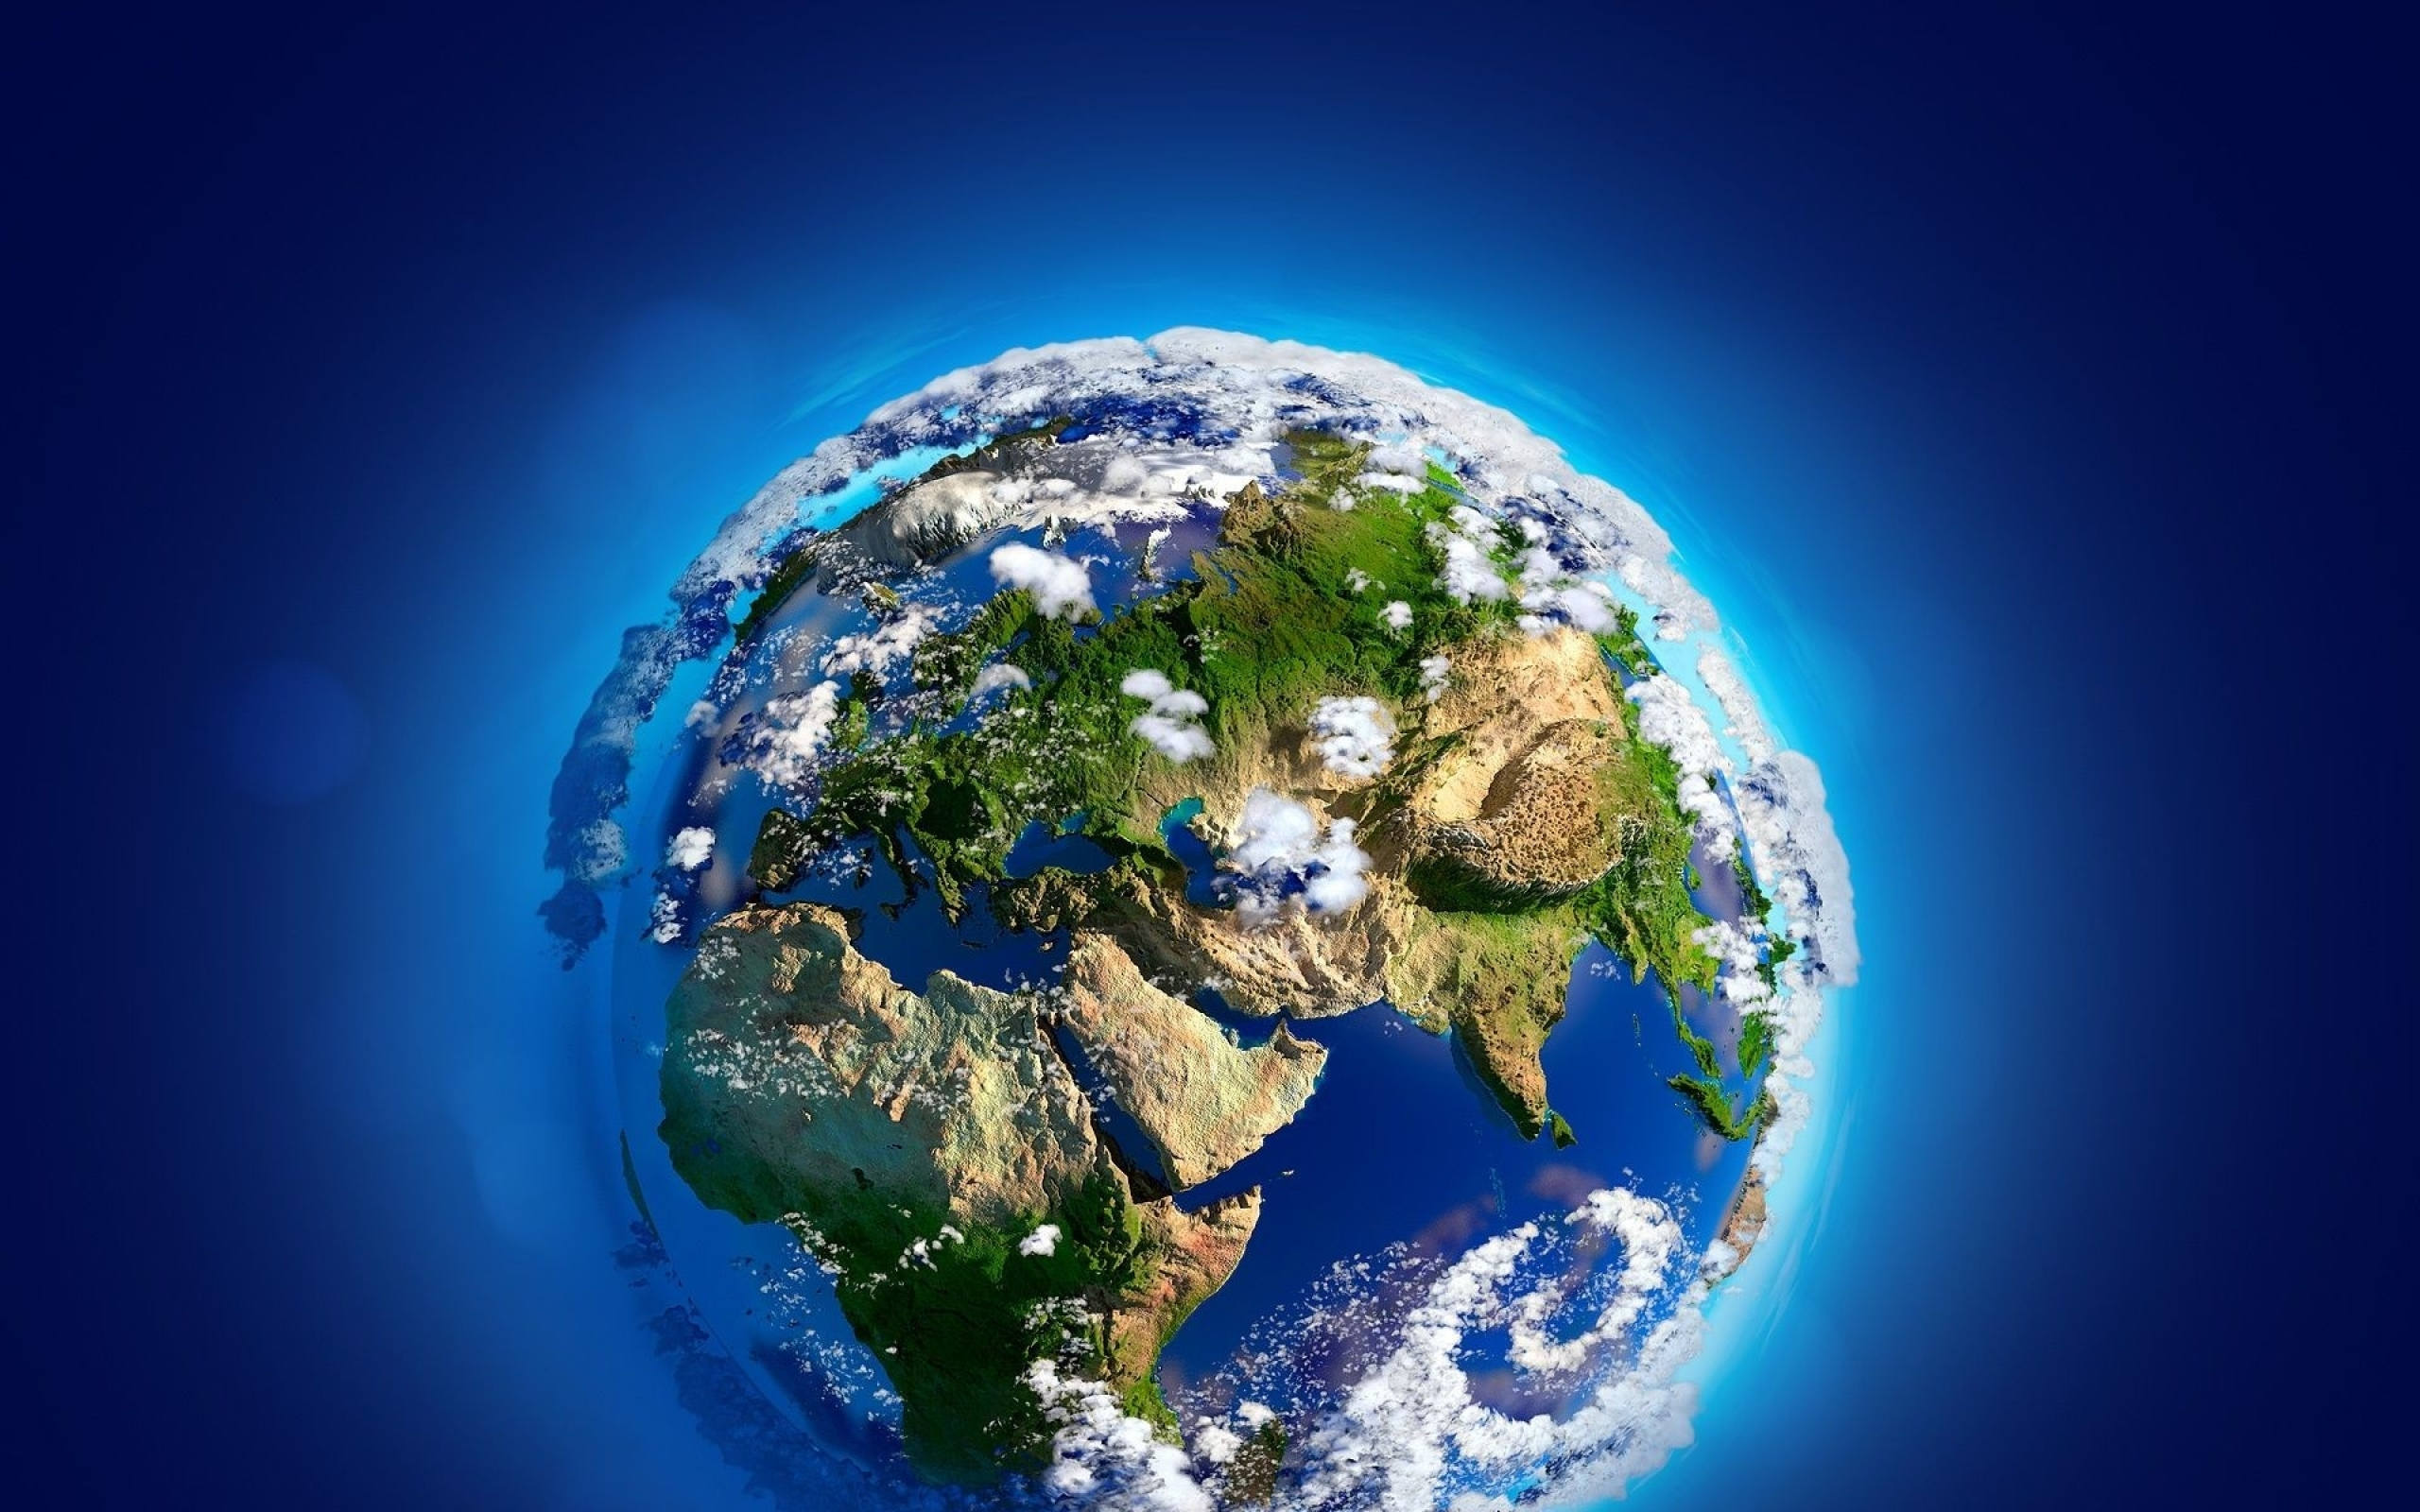 Wallpapers Download 2560x1600 planets earth 3d Wallpaper 2560x1600